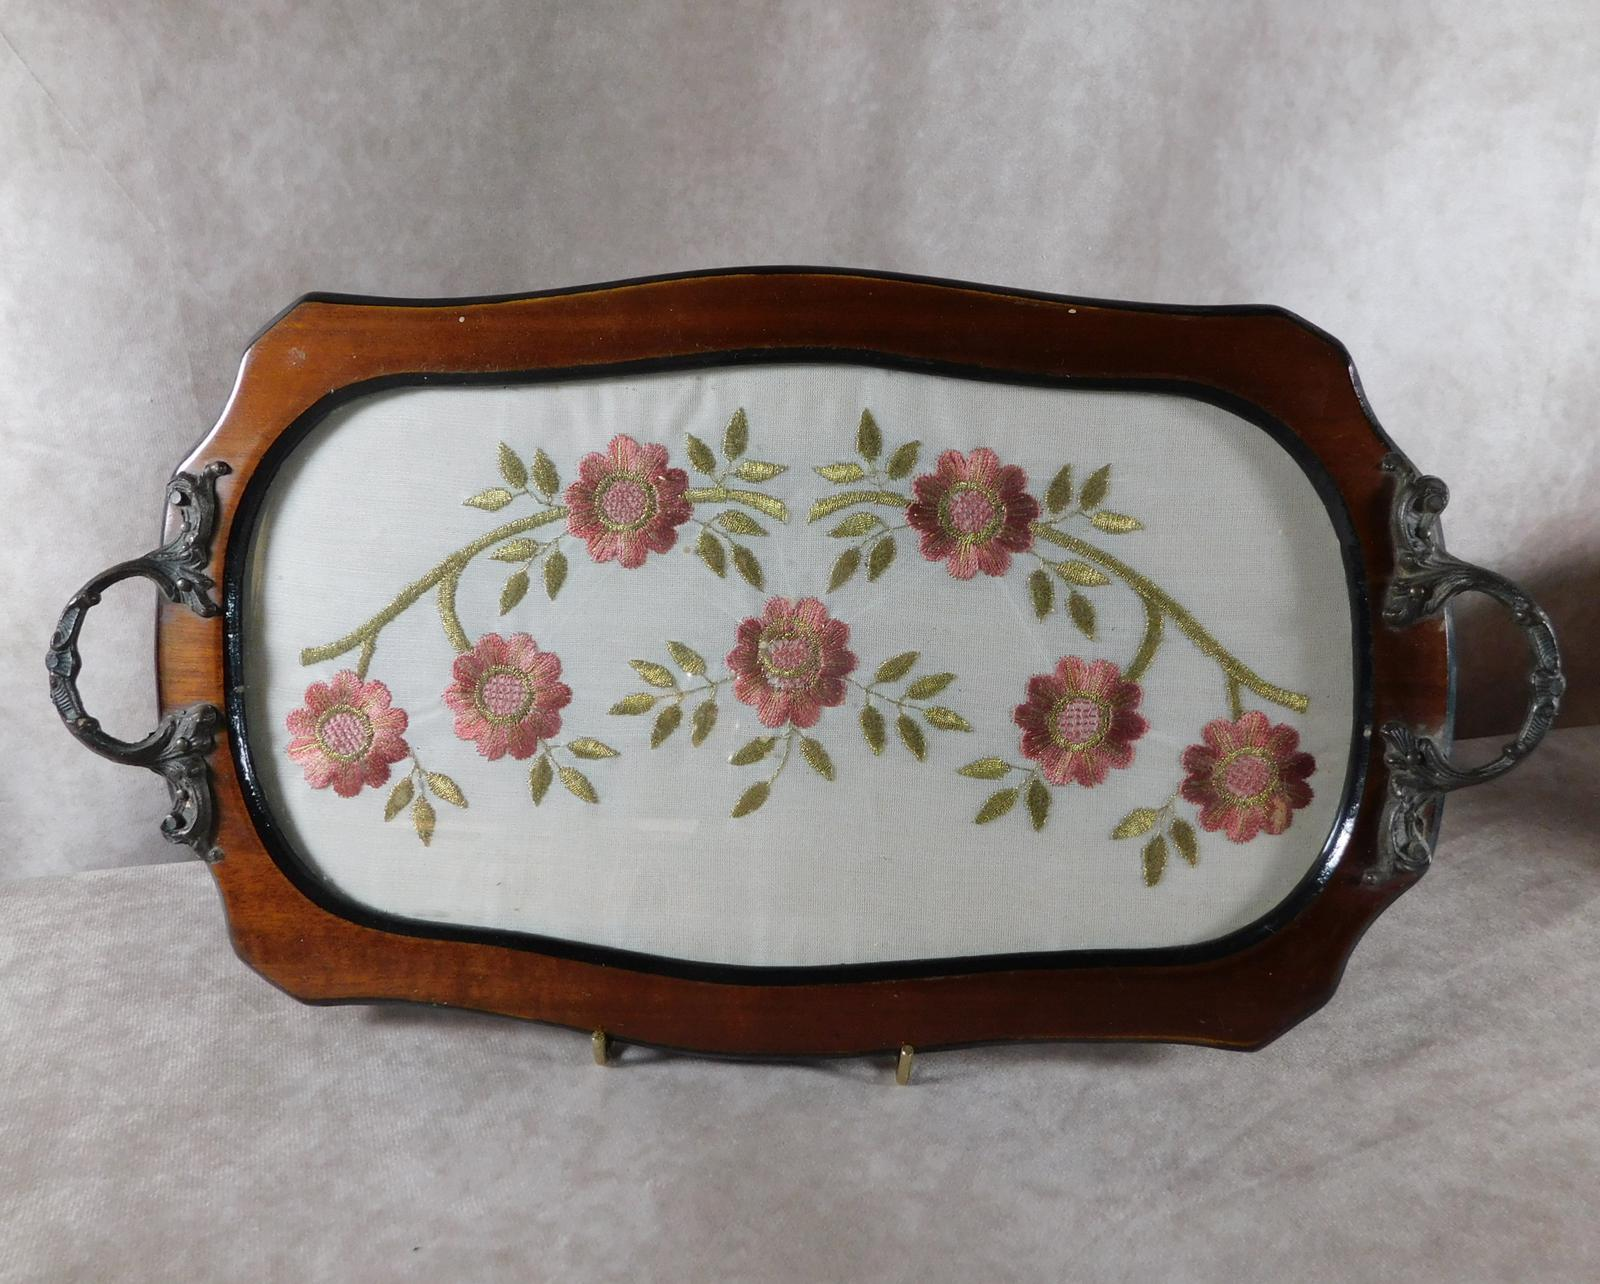 Mahogany Two Handled Tray with Silk Embroidered Panel (1 of 1)